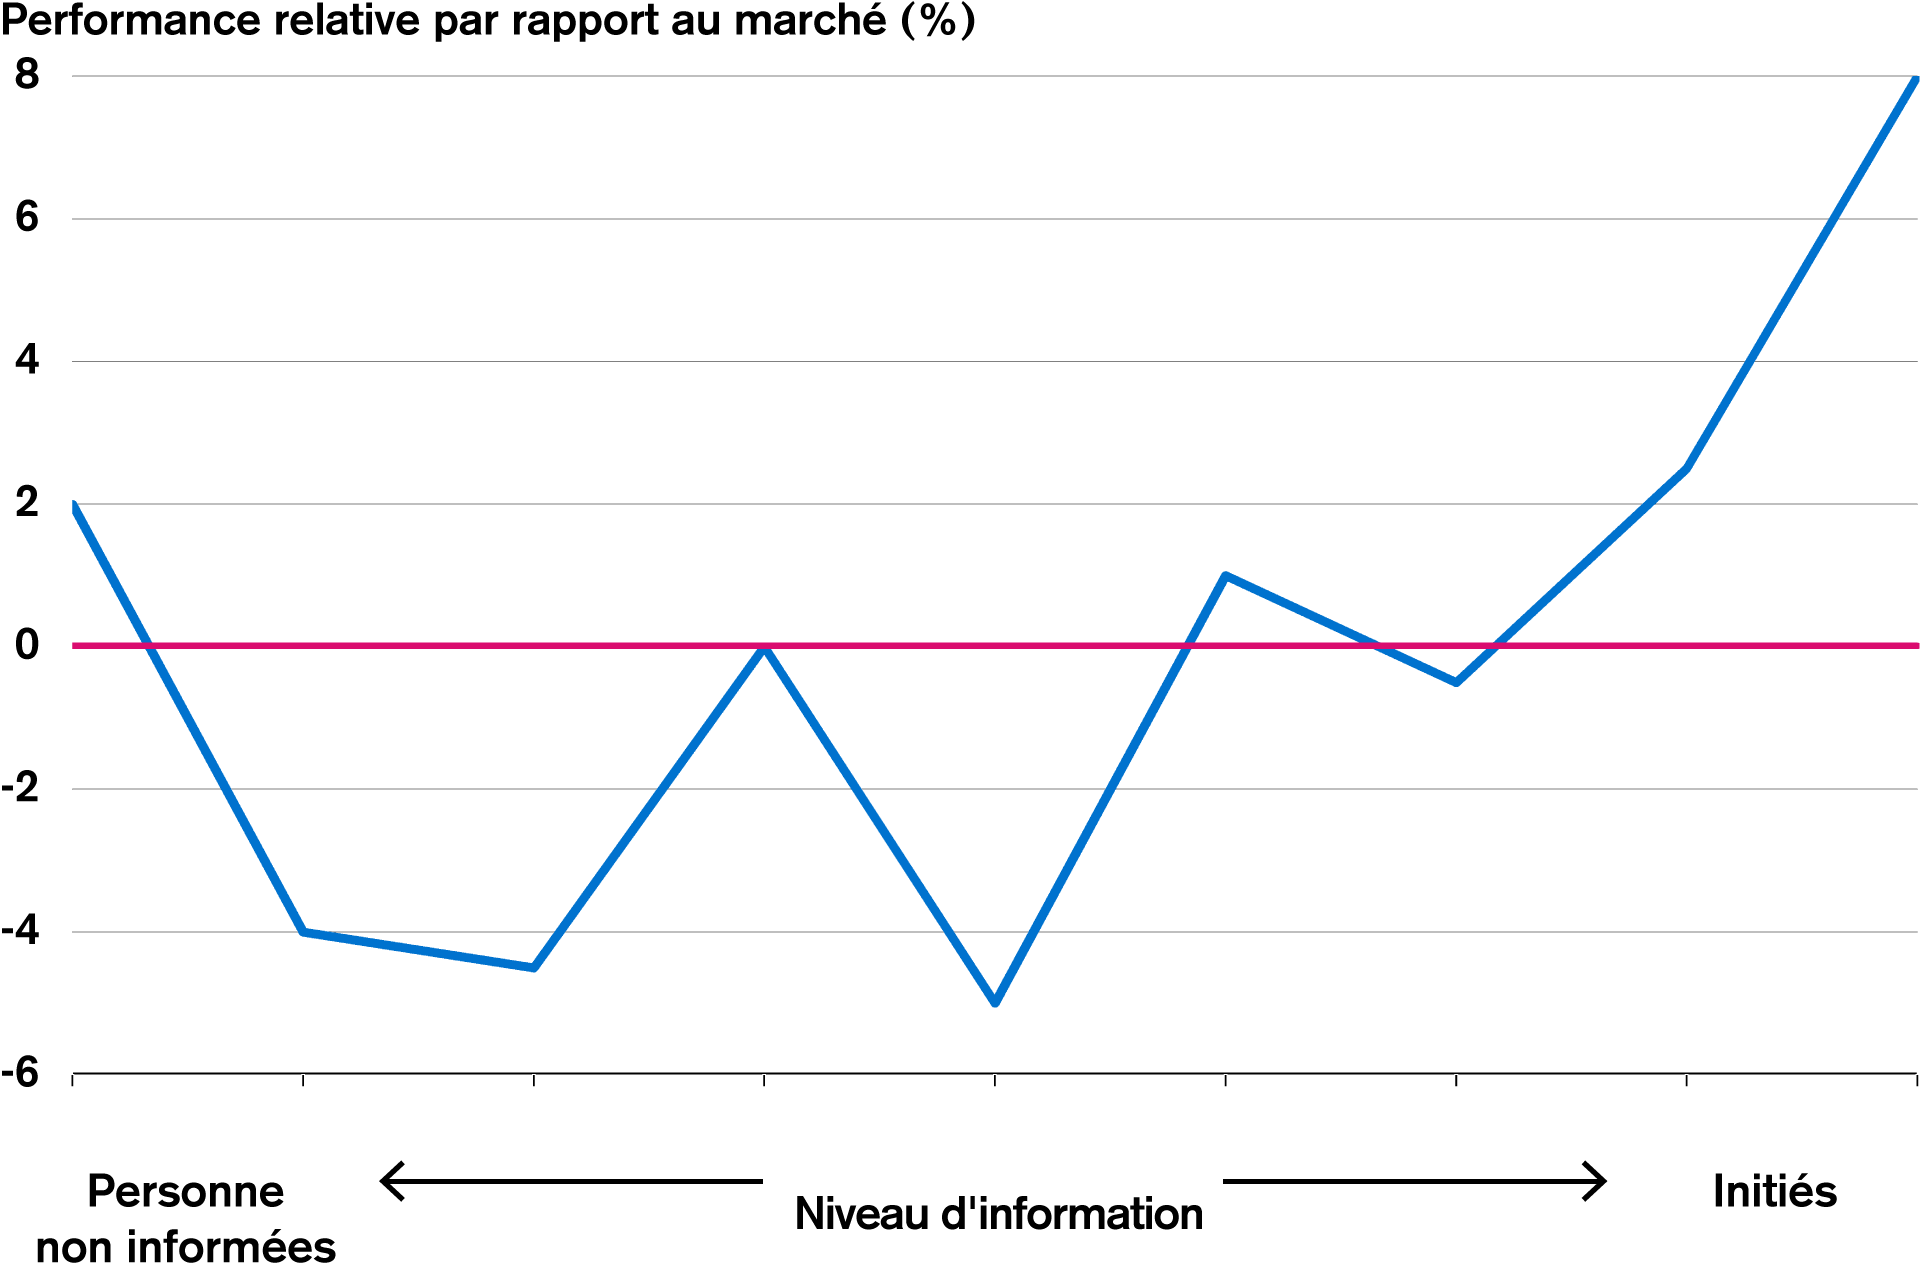 Figure 4: Performance relative par rapport au niveau d'information